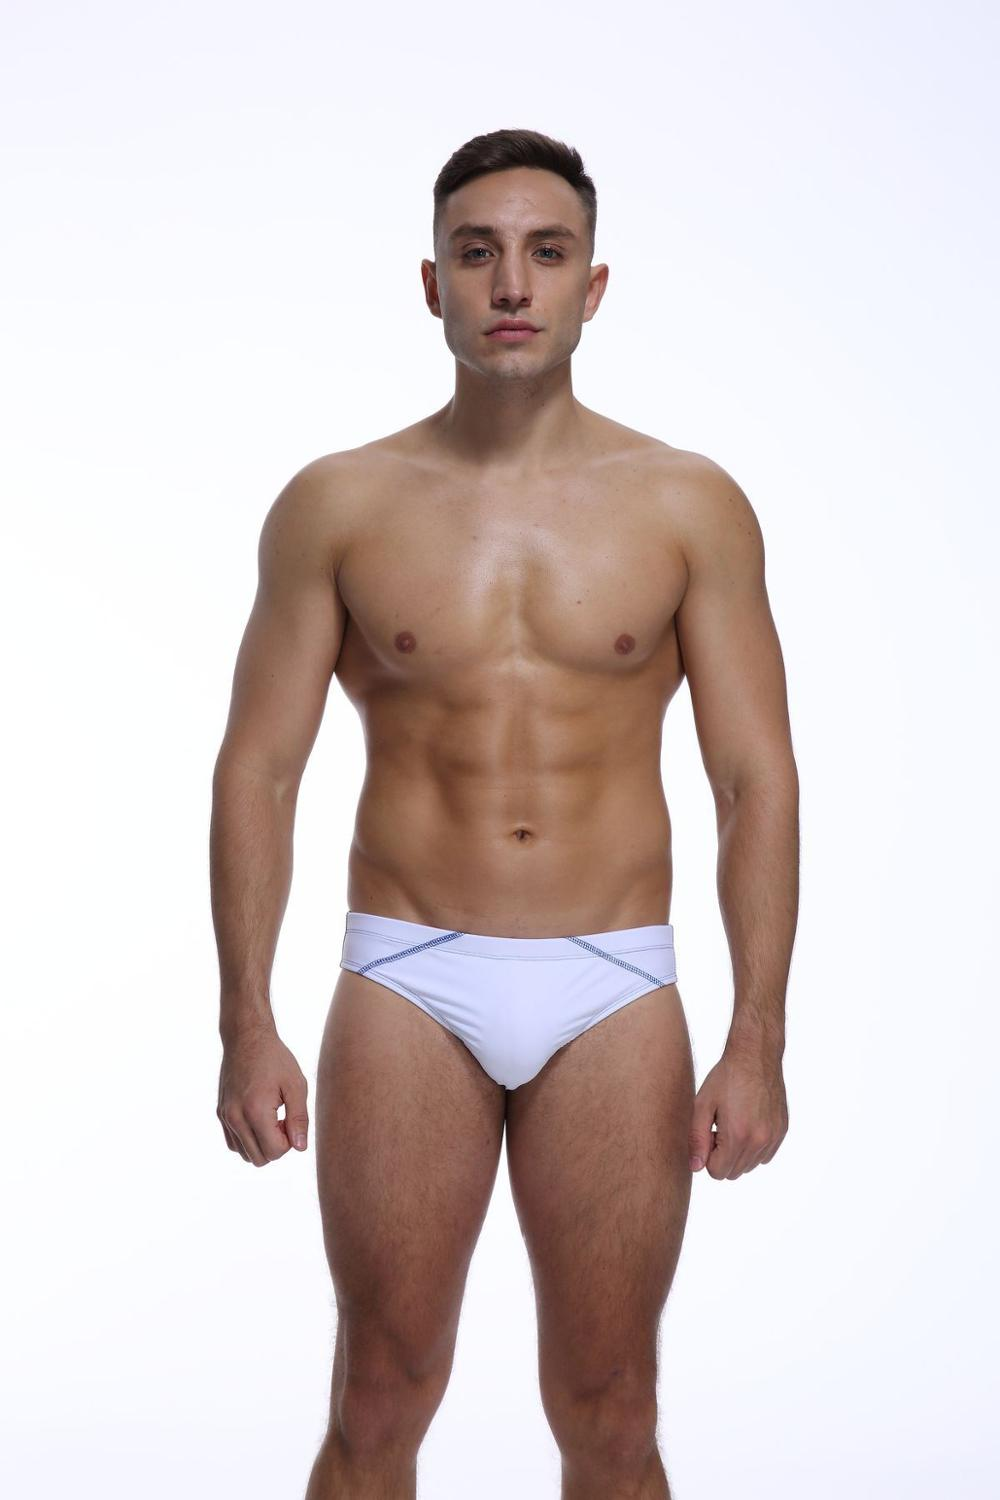 Men's underwear men's low-waisted sexy briefs wide edge solid cotton U protruding briefs cotton underwear